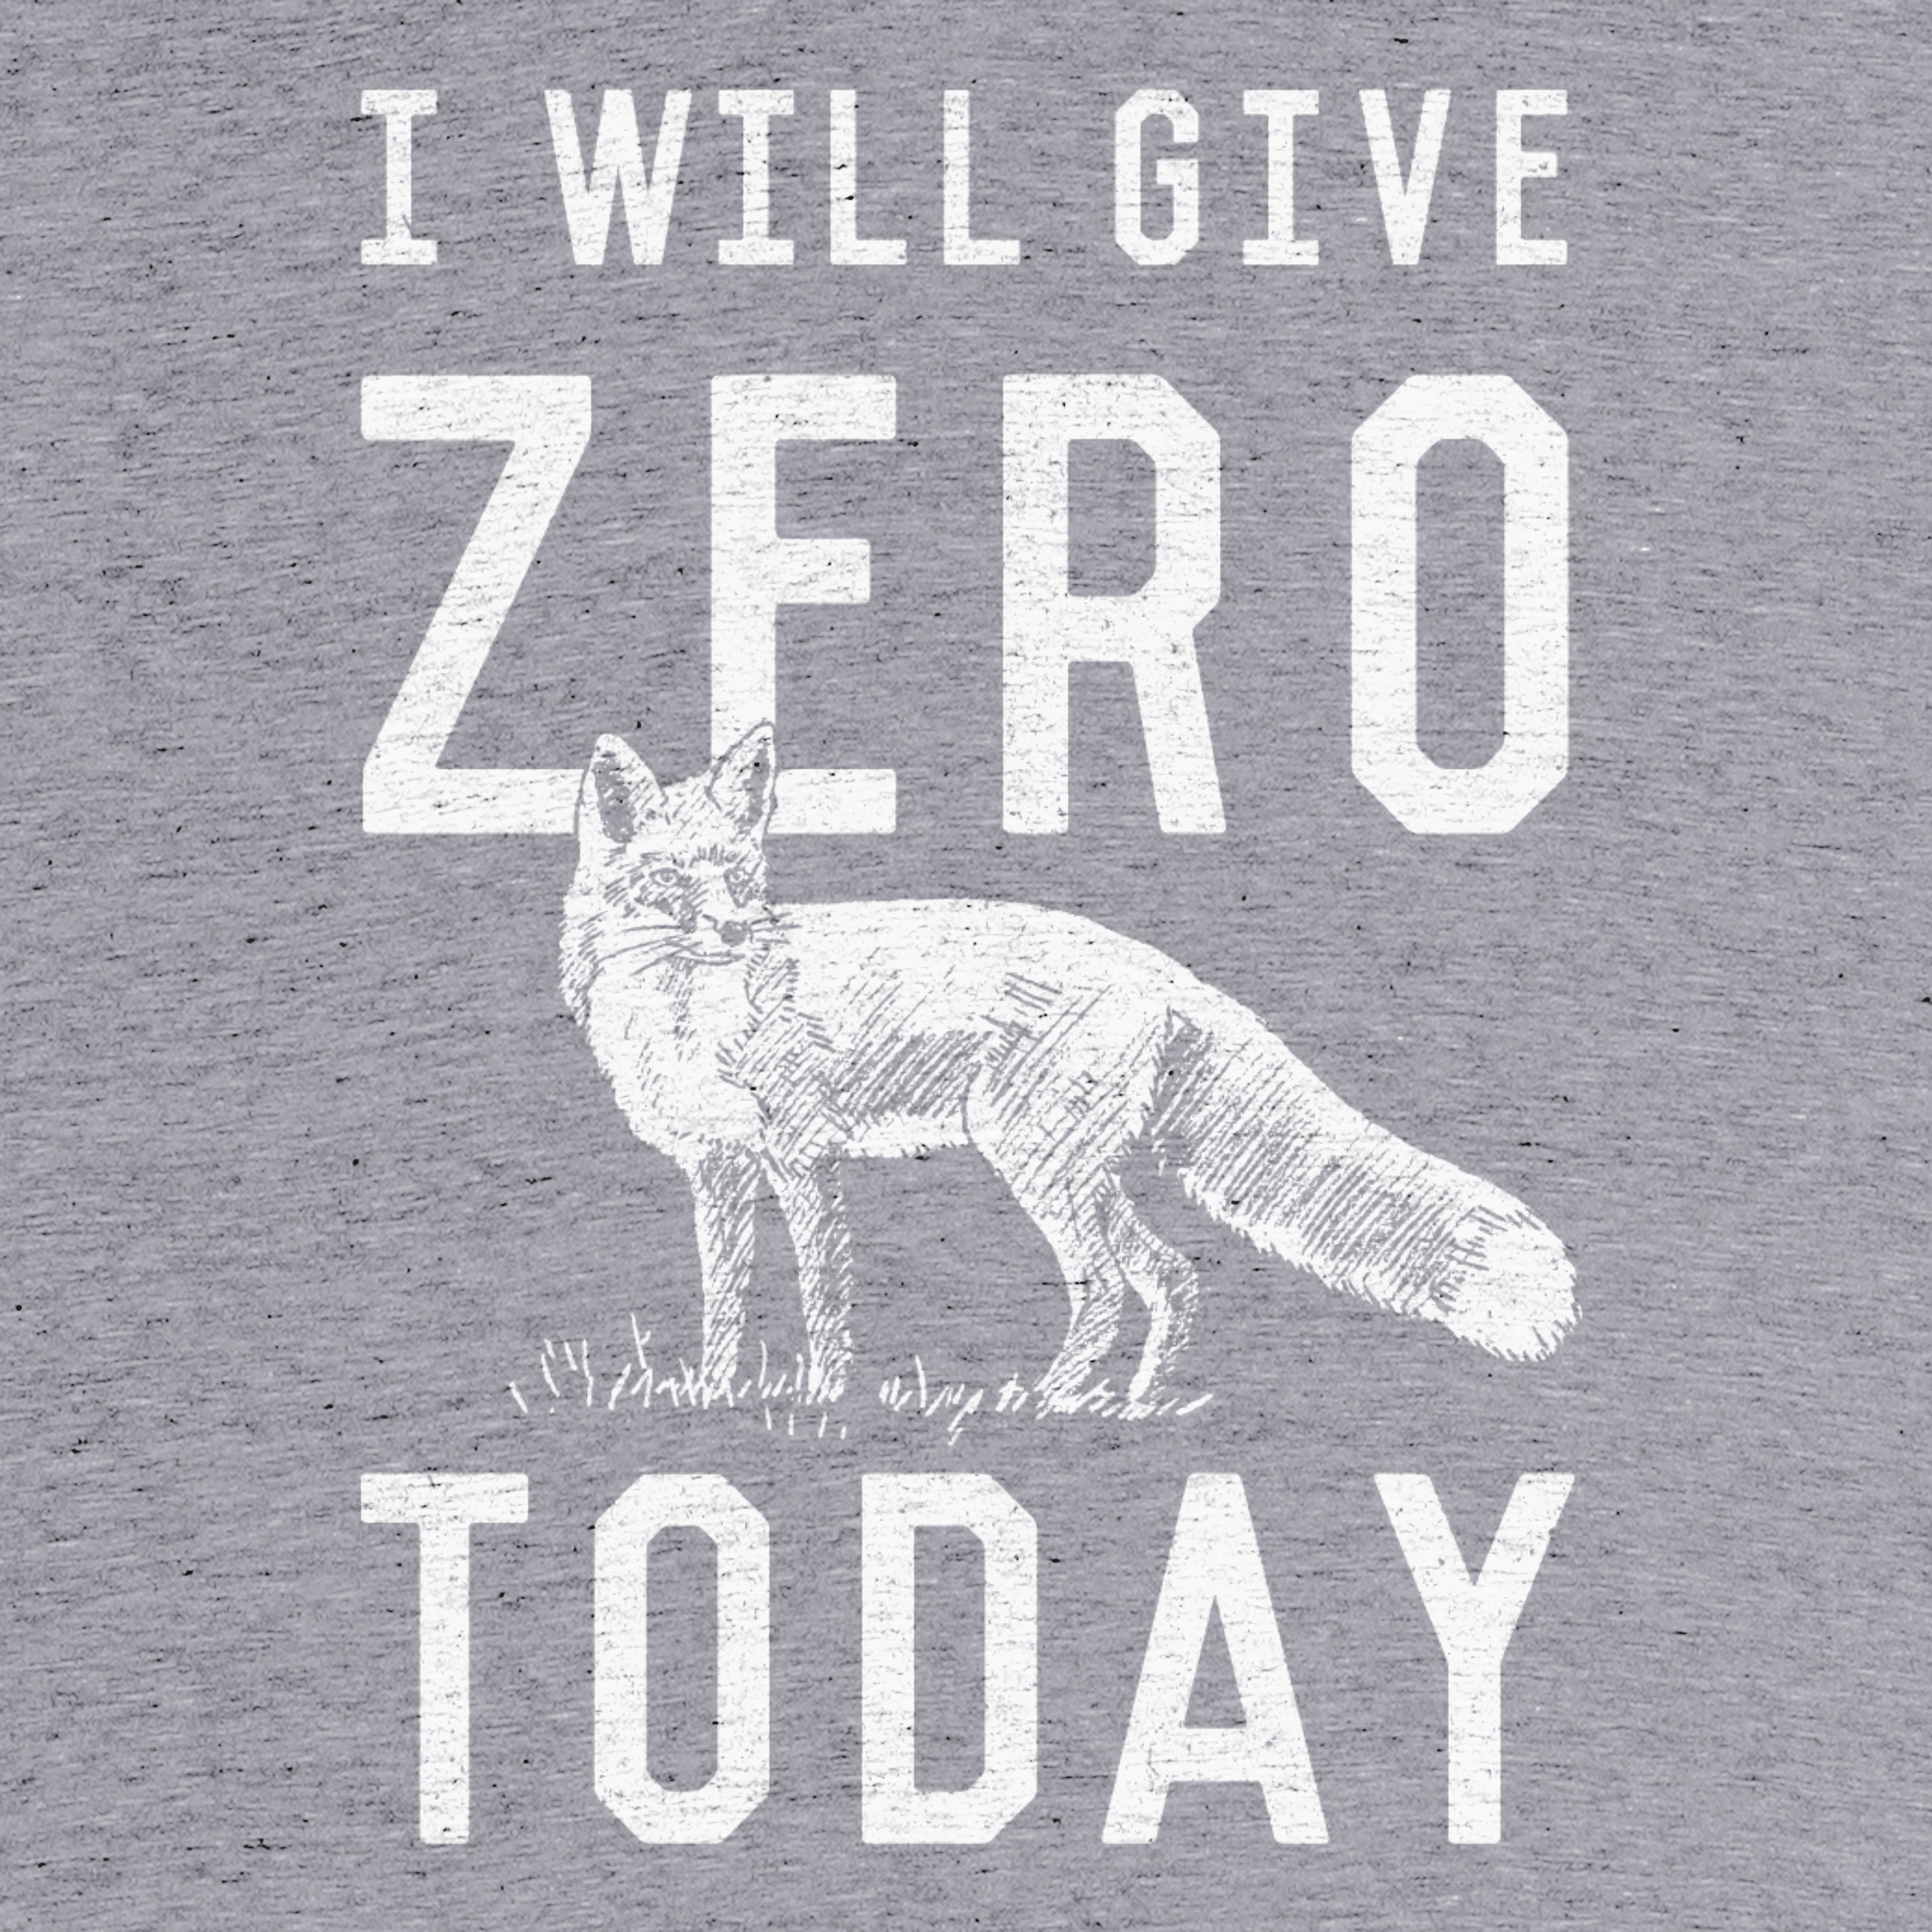 I Will Give Zero Fox Today